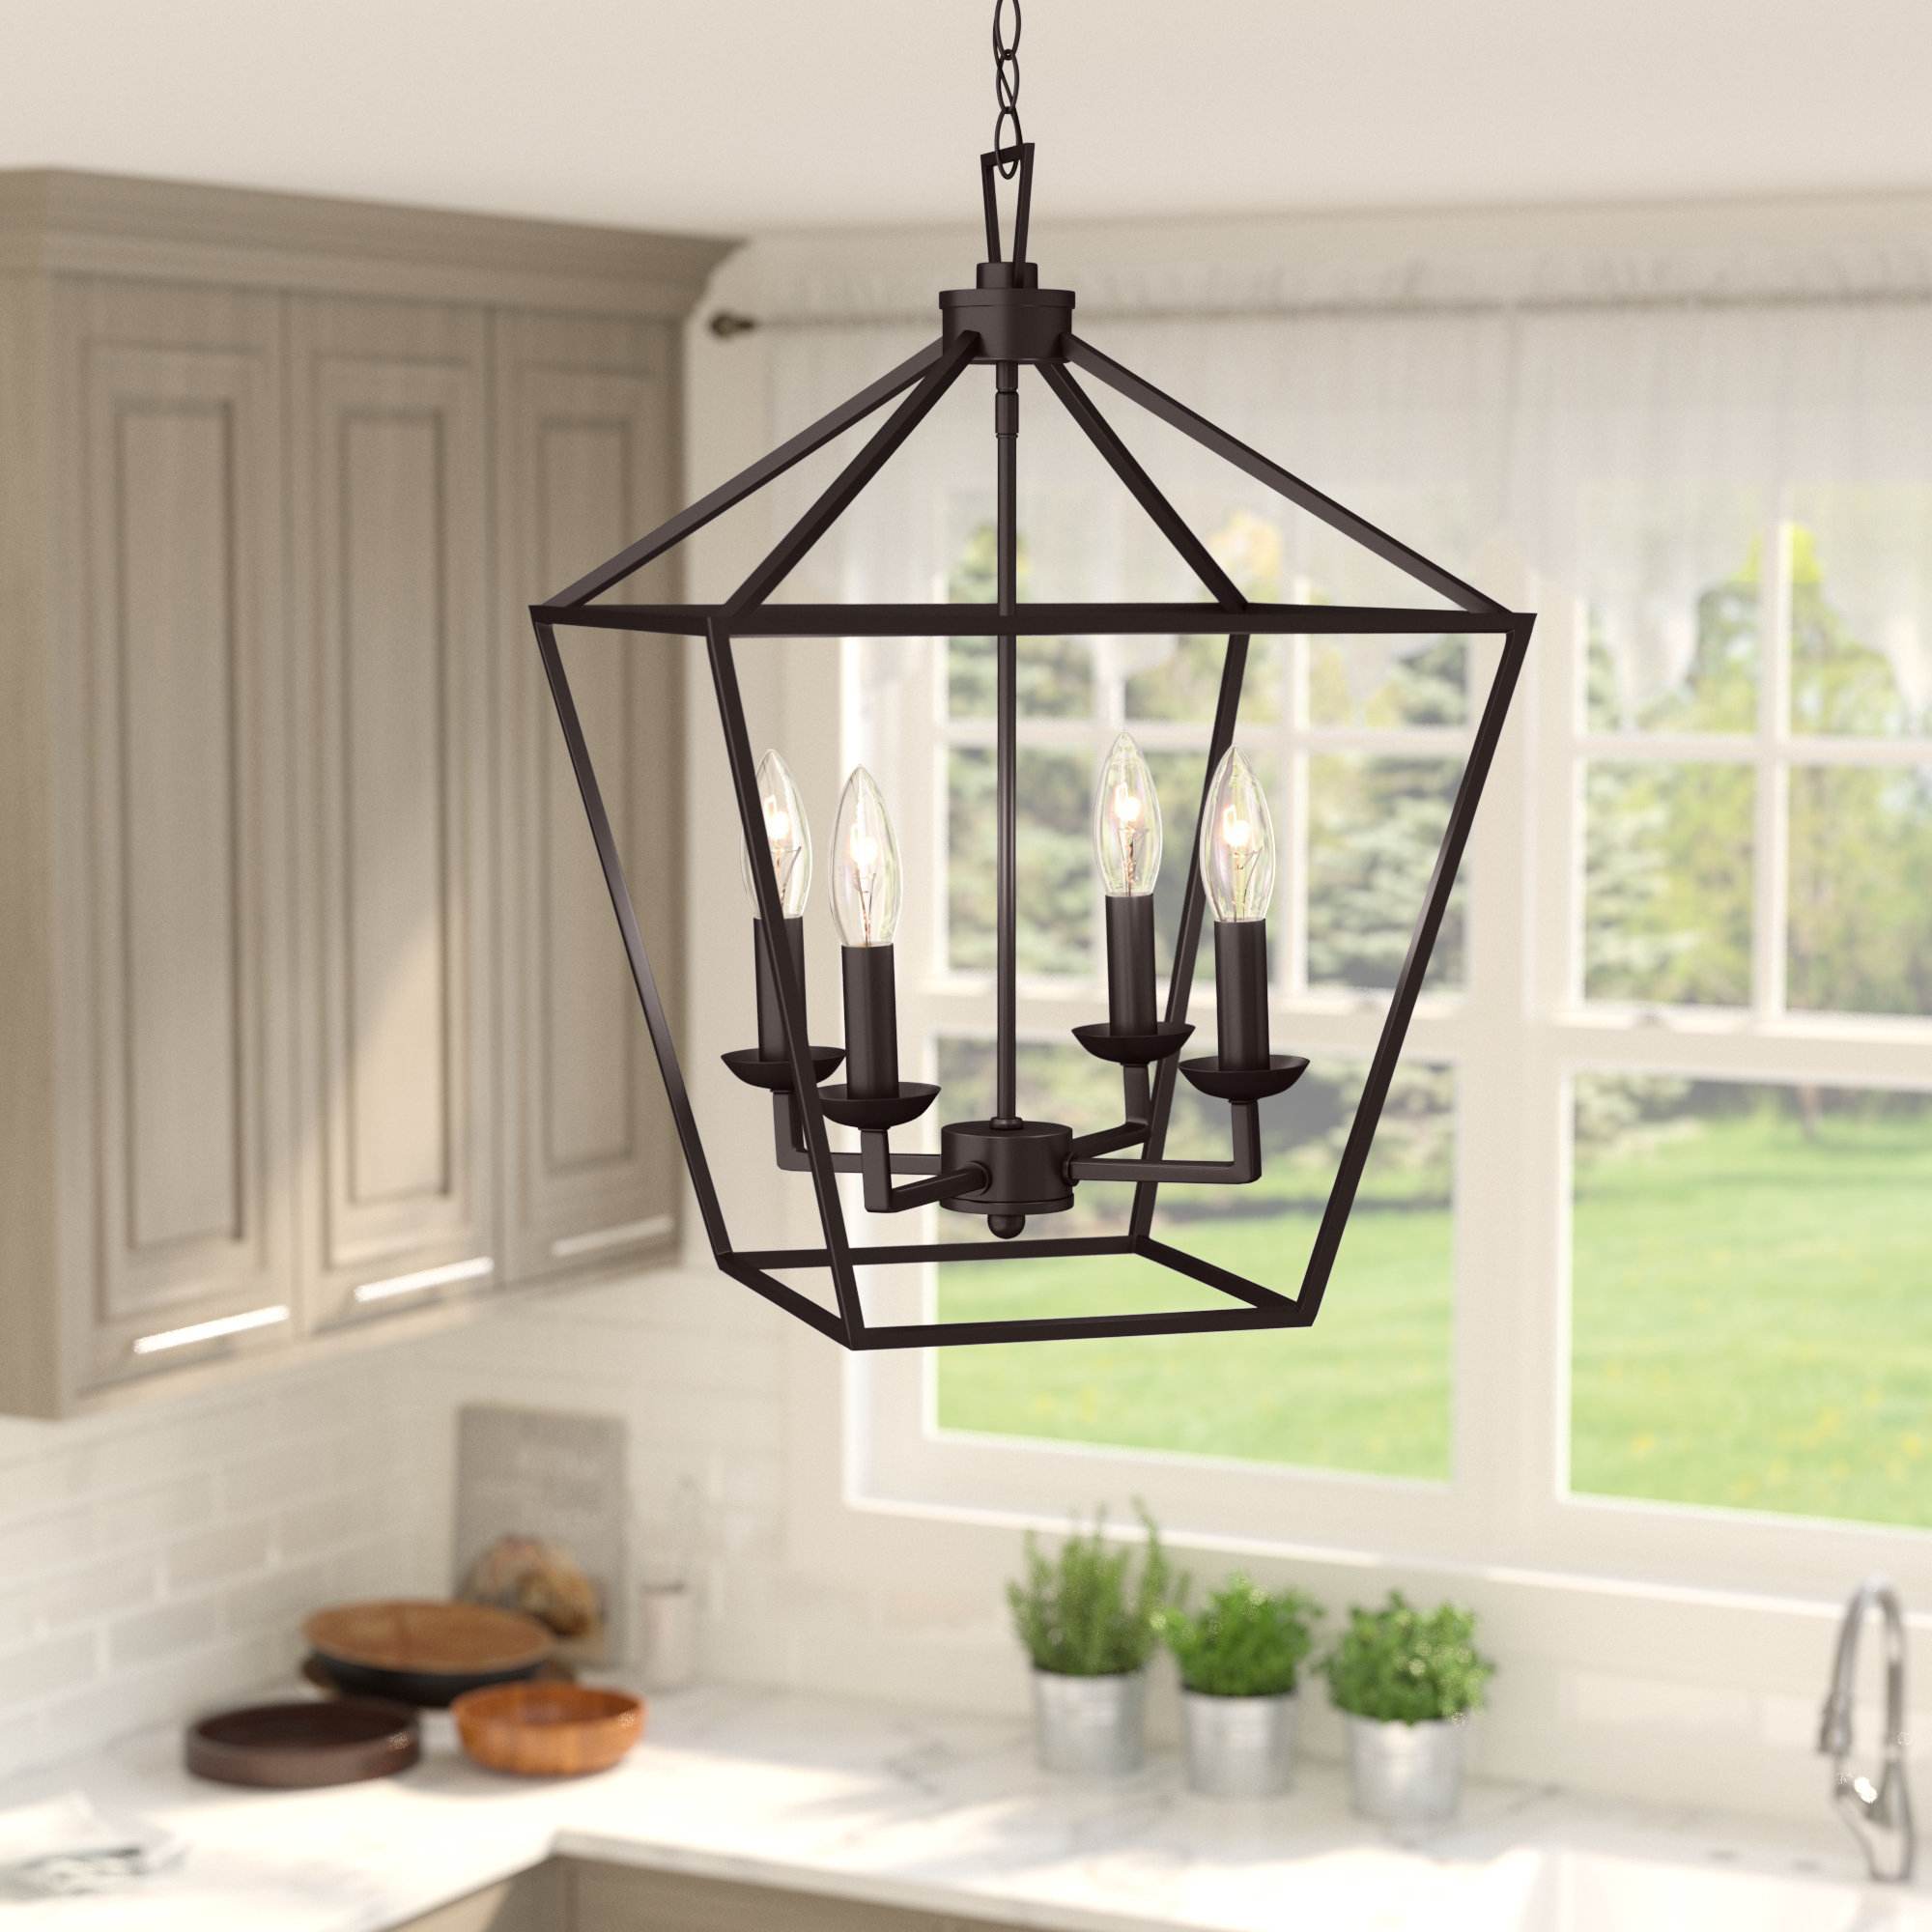 Louanne 1 Light Lantern Geometric Pendants Intended For Most Recently Released Carmen 4 Light Lantern Geometric Pendant (View 8 of 25)